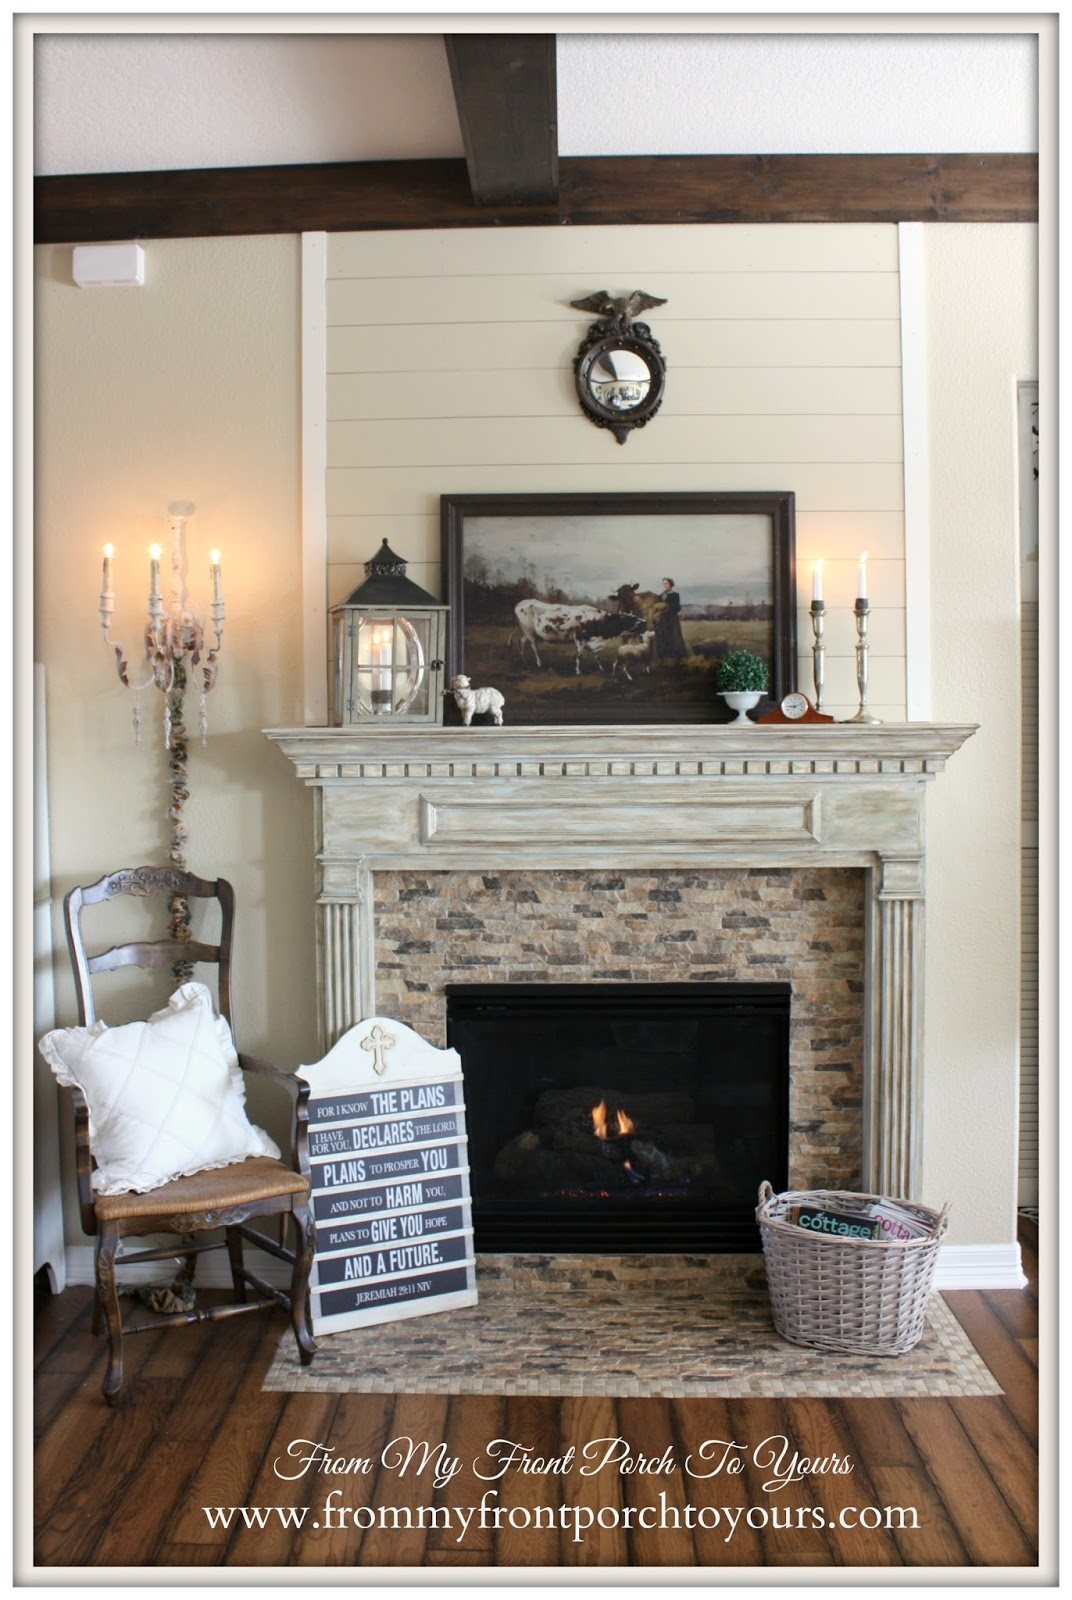 From My Front Porch To Yours: French Country Mantel